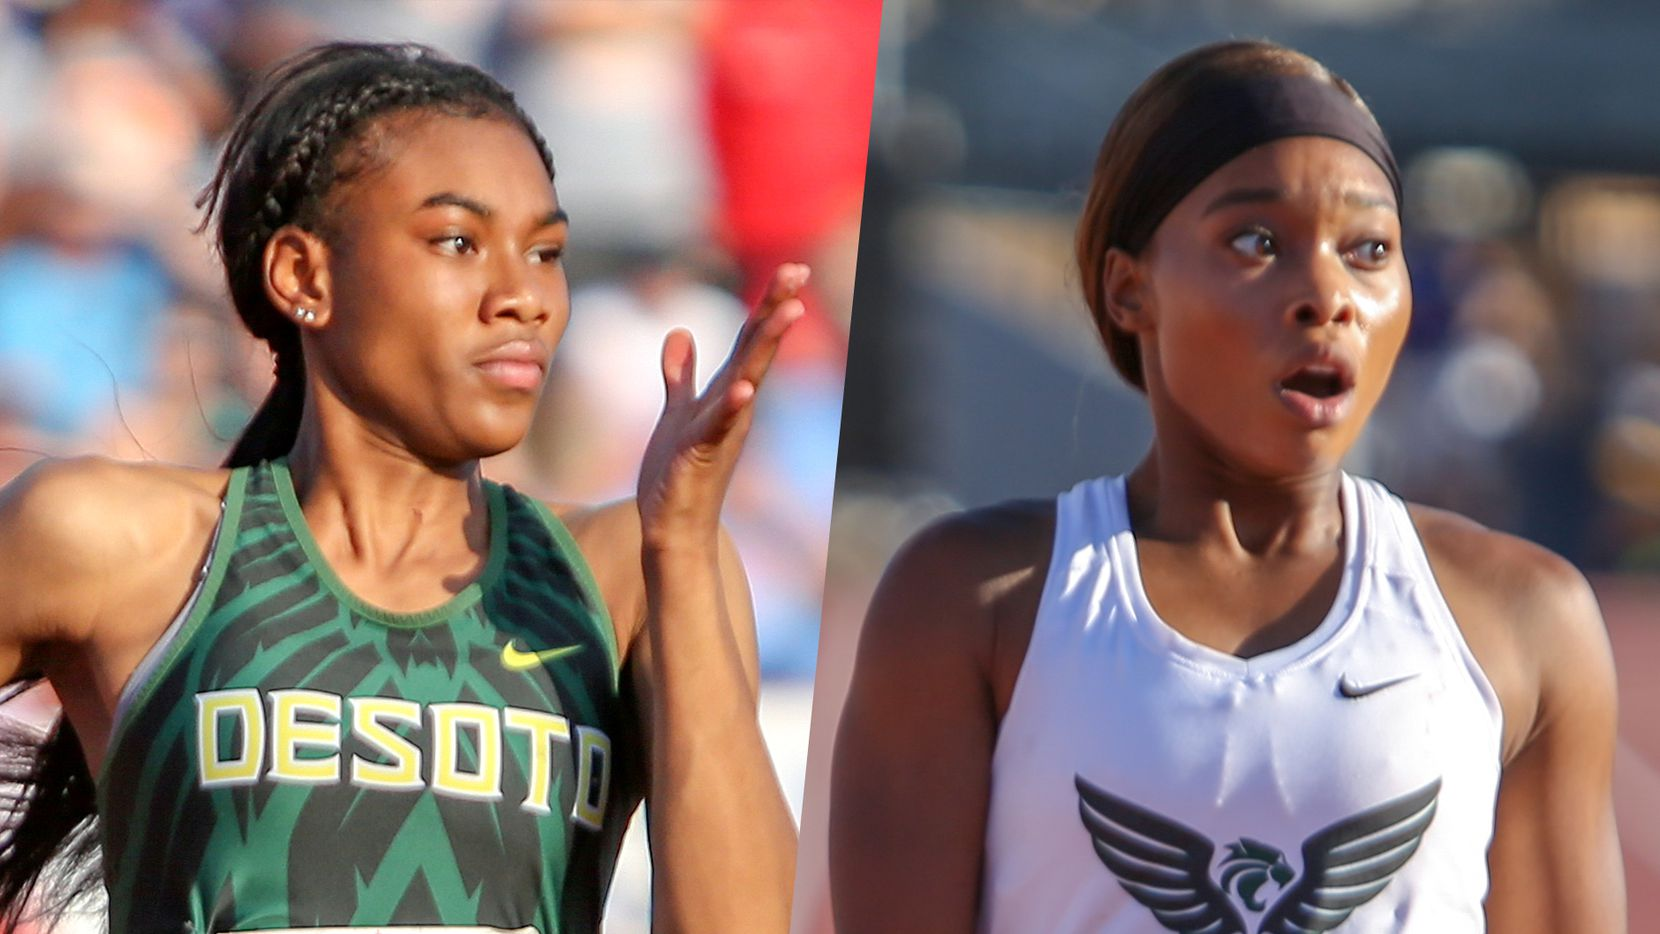 DeSoto's Amelliah Birdow (left) and Kennedale's Brianna Brand.